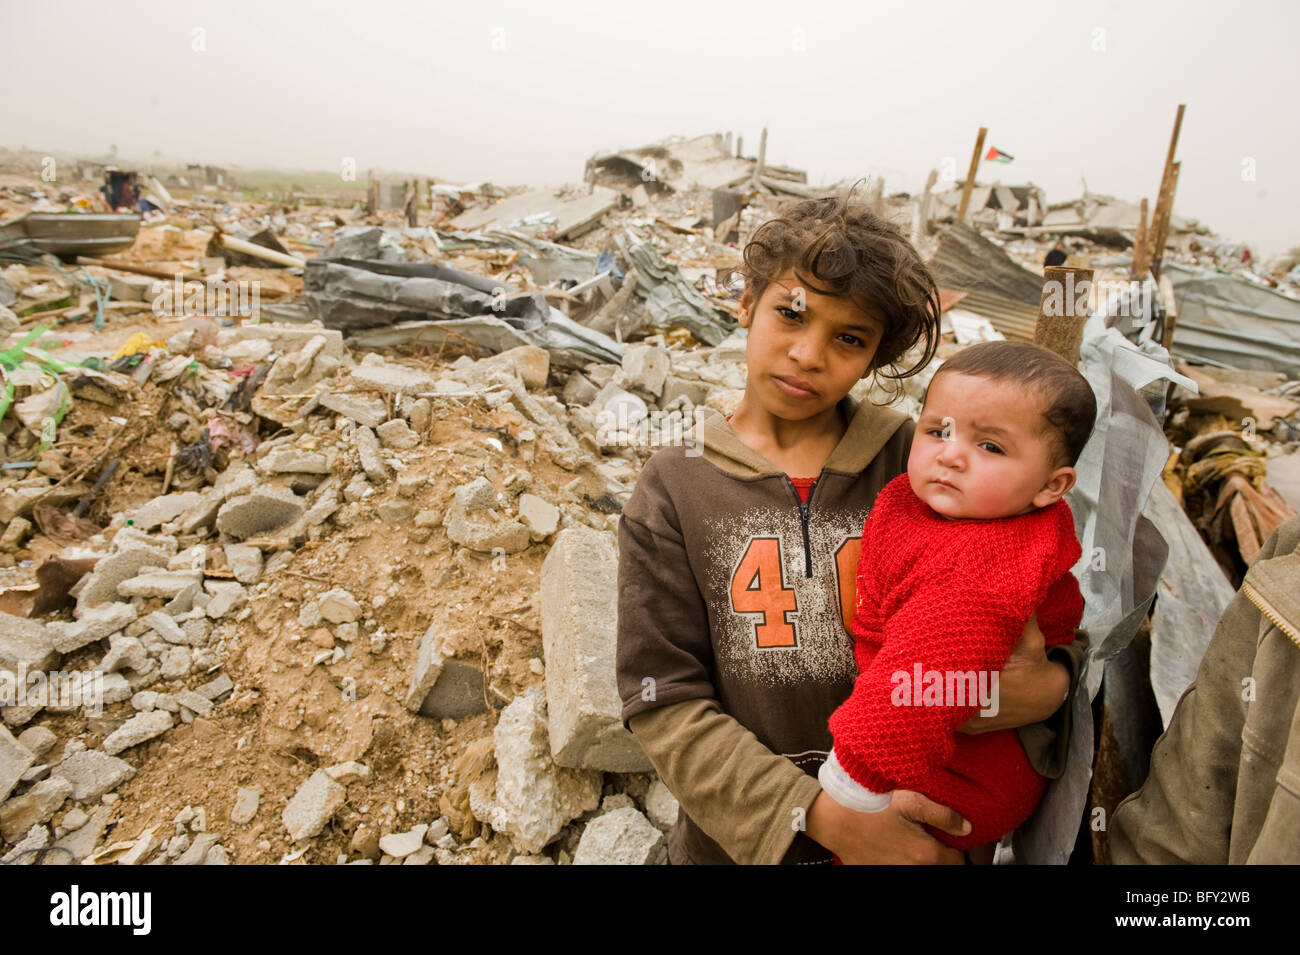 Children at the remains of their home destroyed in January's Israeli military offensive, in Jebaliya, northern - Stock Image